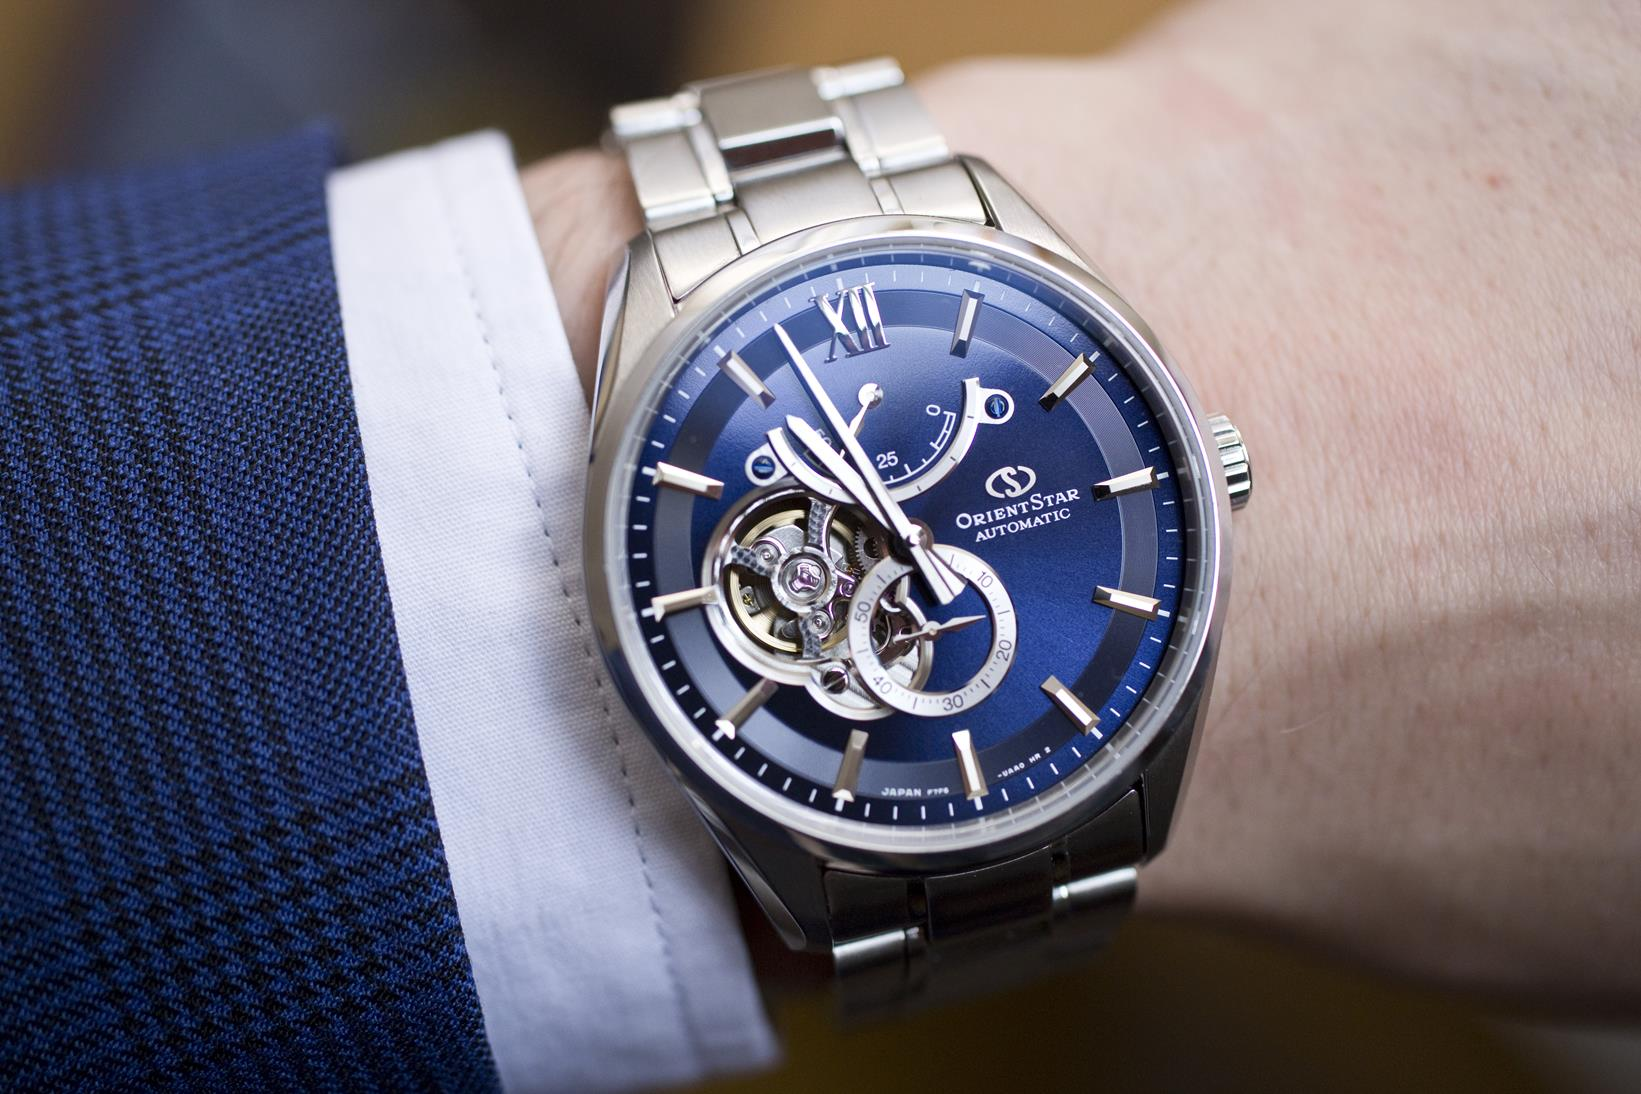 Orient Star Slim Skeleton RK-HJ0002L – review and comparison with cheaper Modern Skeleton models